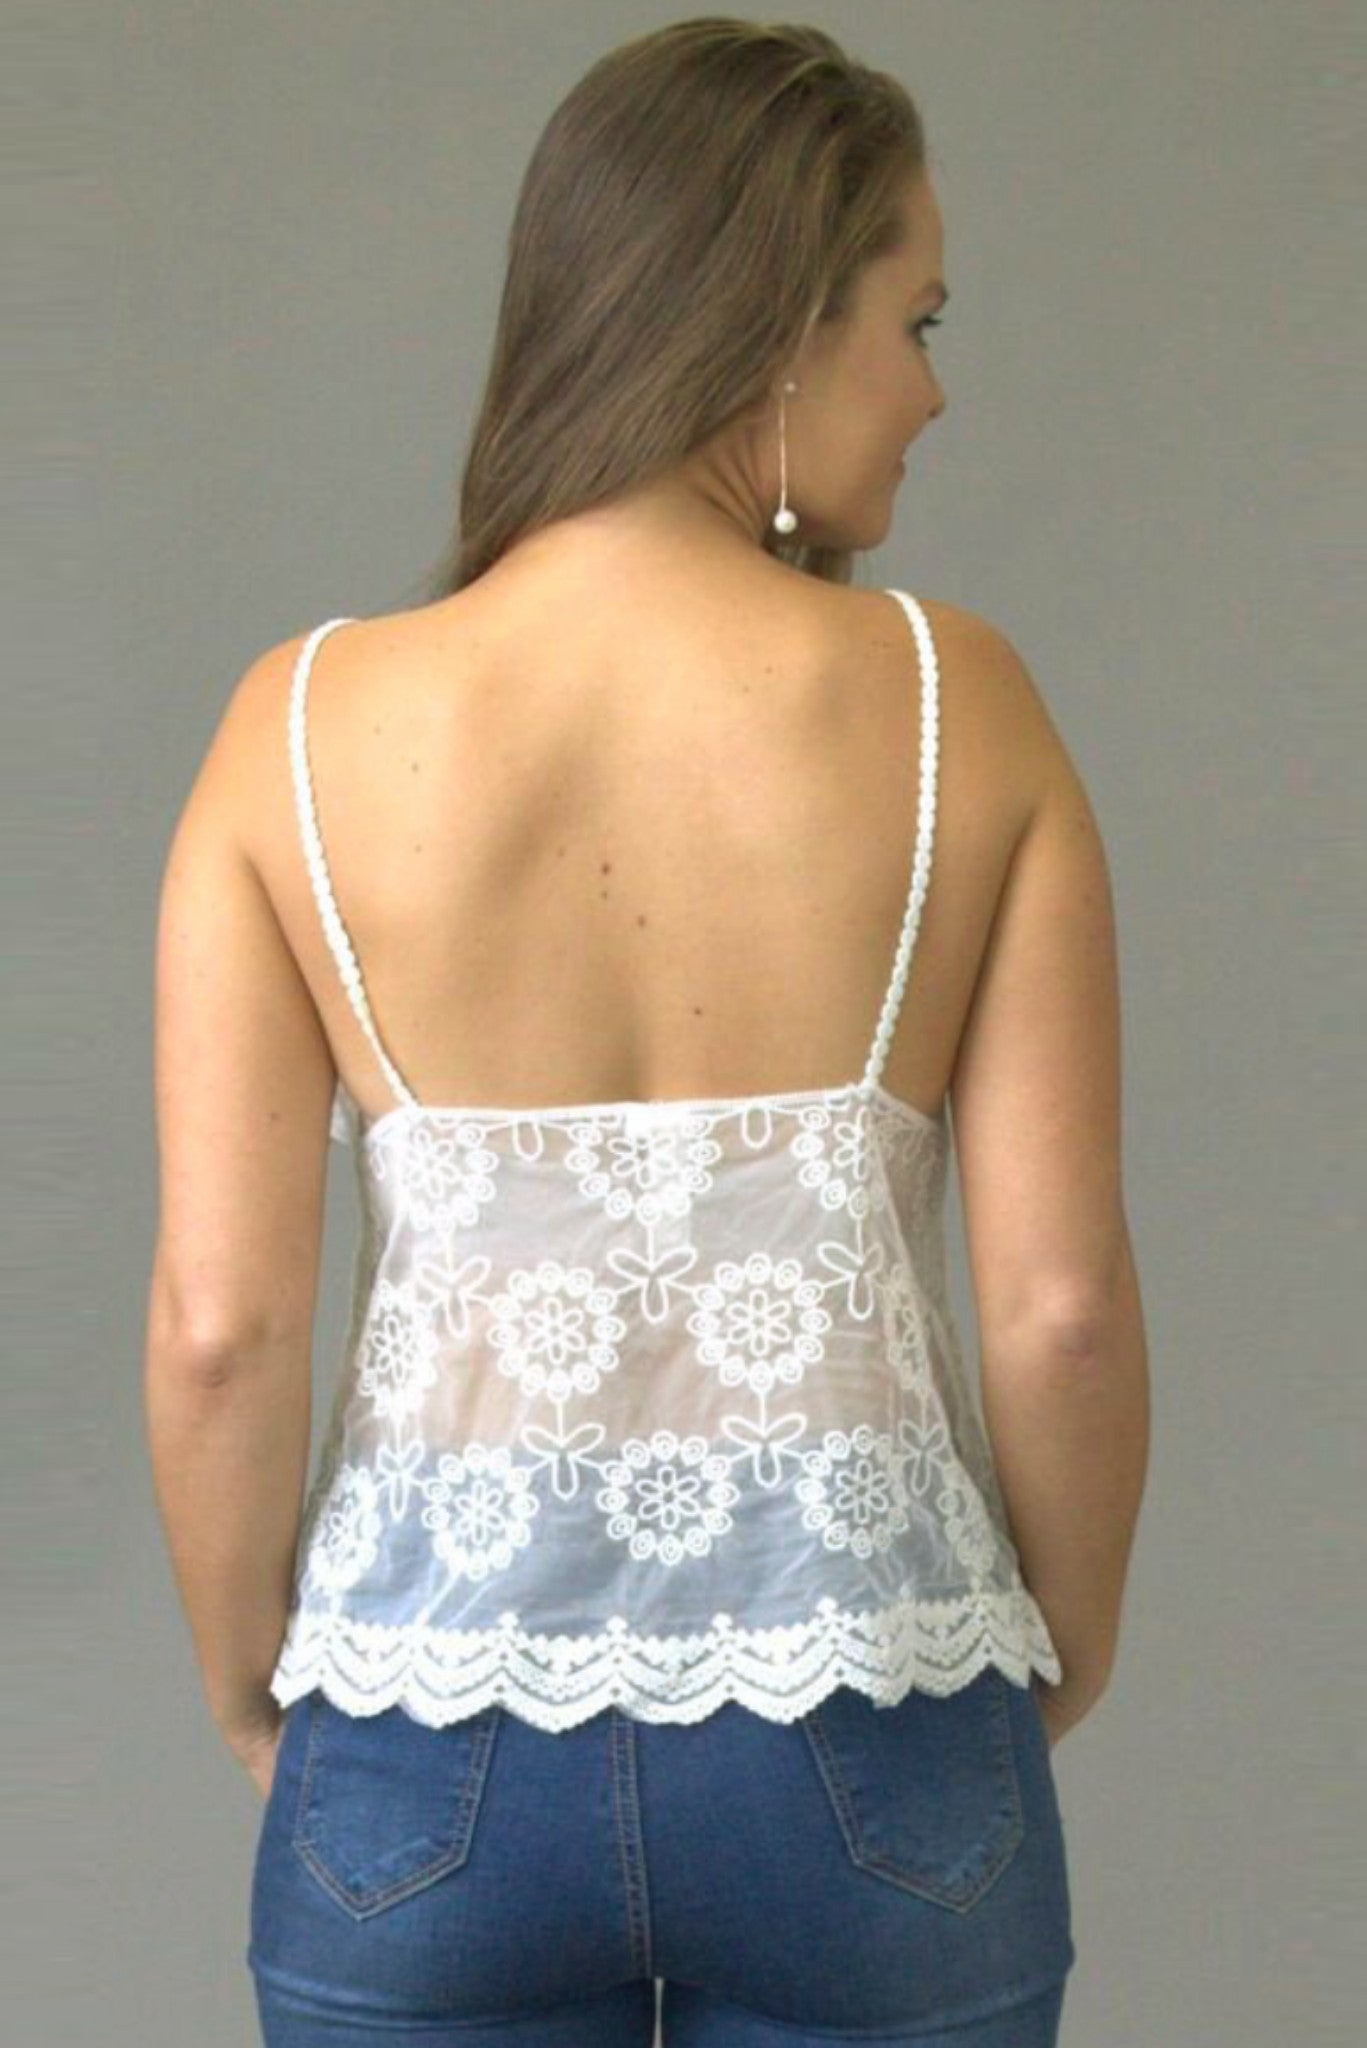 Dainty Daisy Fan Cream Lace Cami - Purity Lace Designs